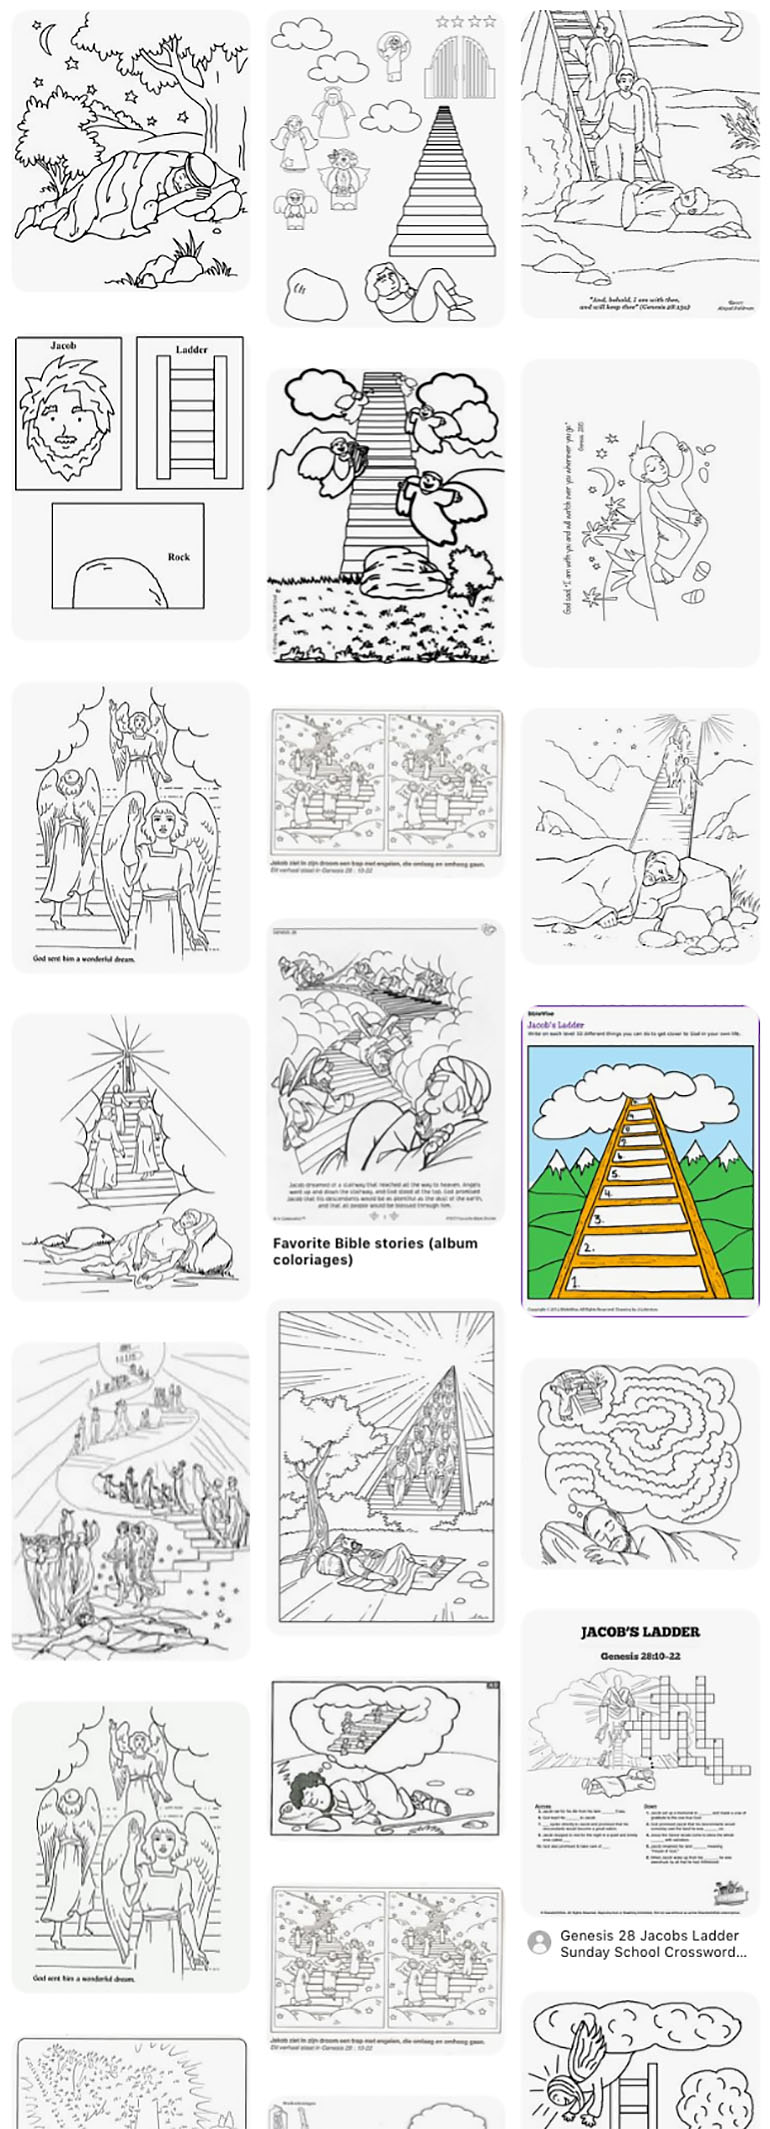 Jacob's Ladder Dream coloring page | Free Printable Coloring Pages | 2129x770